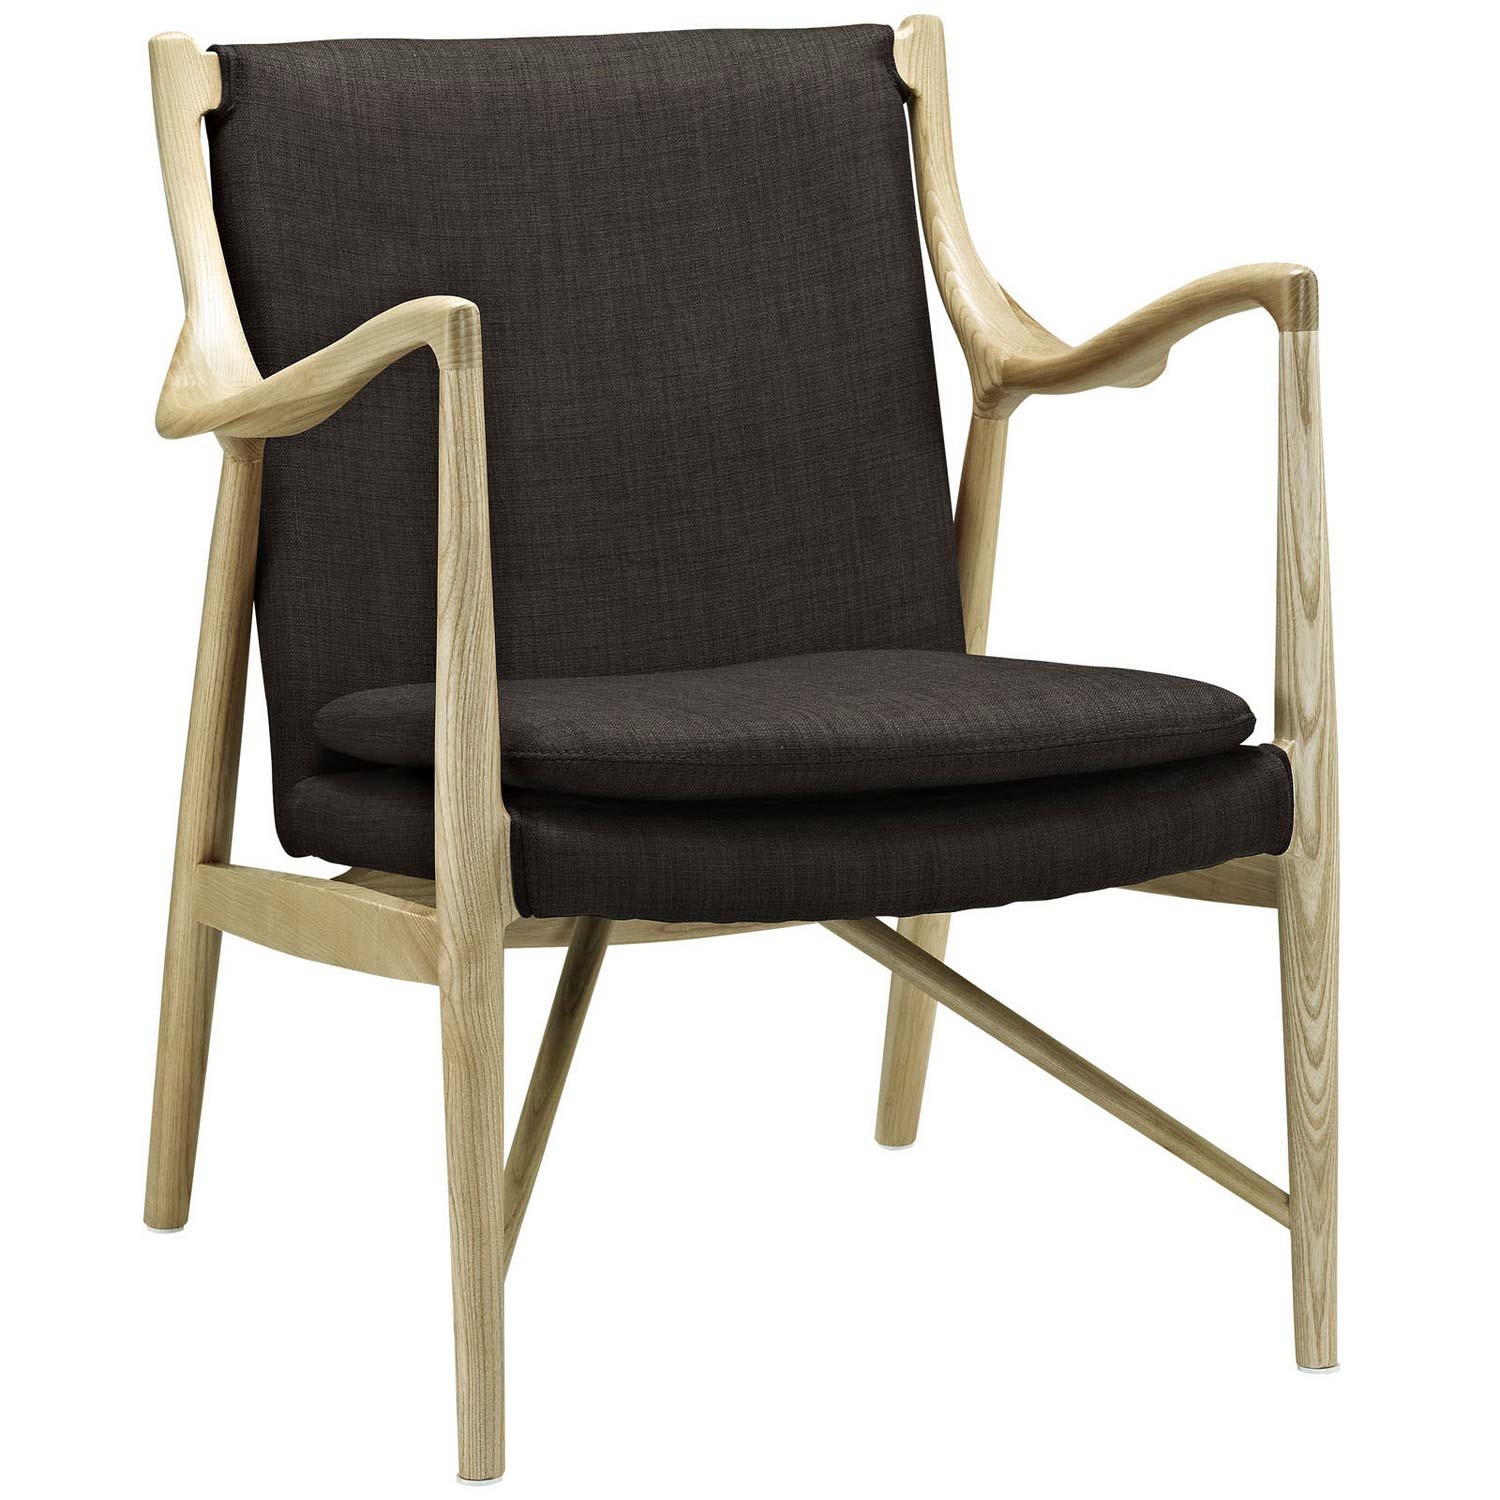 Modway Makeshift Upholstered Lounge Chair - Natural Brown